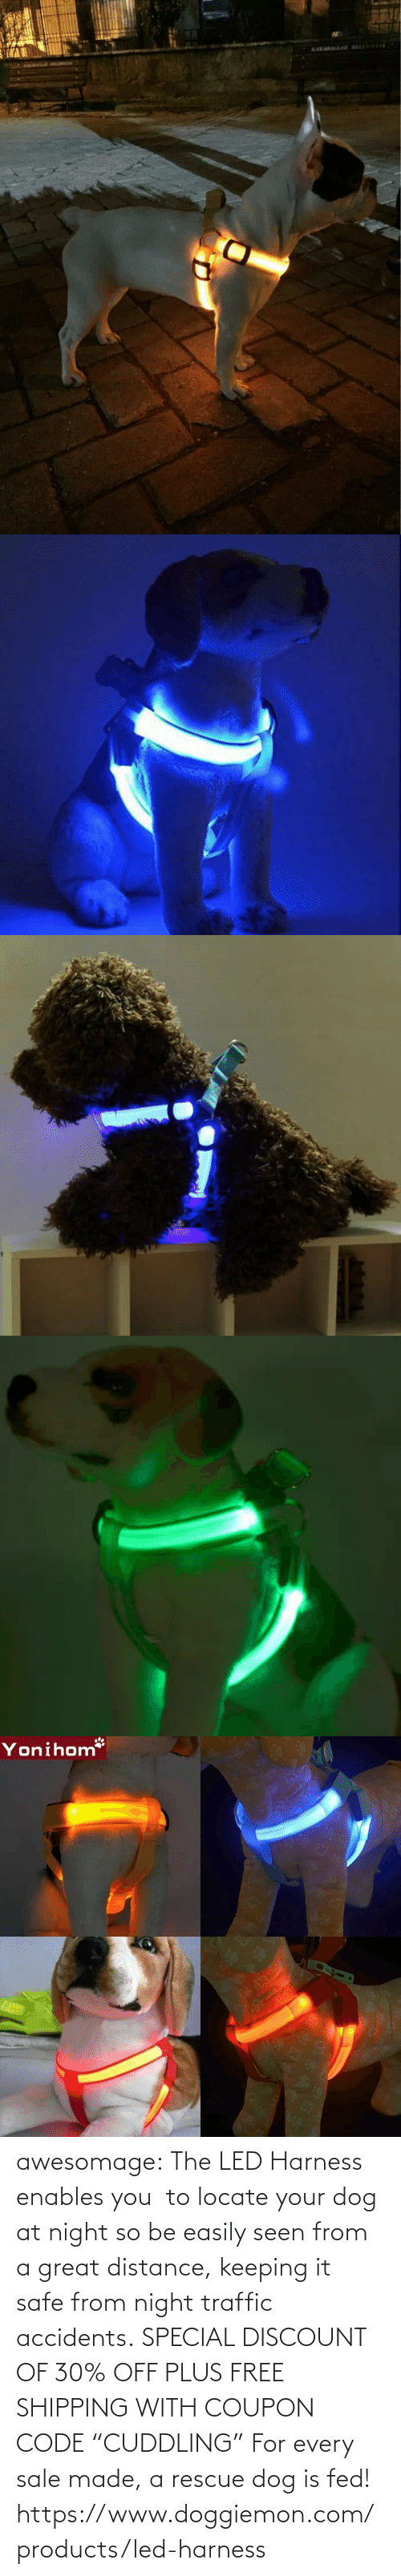 """Traffic, Tumblr, and Blog: A1KAMAGLAR RELERVS  BILIRALLAN JOI   Yonihom  E3  X1  EX awesomage:   The LED Harness enables you to locate your dog at night so be easily seen from a great distance, keeping it safe from night traffic accidents. SPECIAL DISCOUNT OF 30% OFF PLUS FREE SHIPPING WITH COUPON CODE """"CUDDLING"""" For every sale made, a rescue dog is fed!   https://www.doggiemon.com/products/led-harness"""